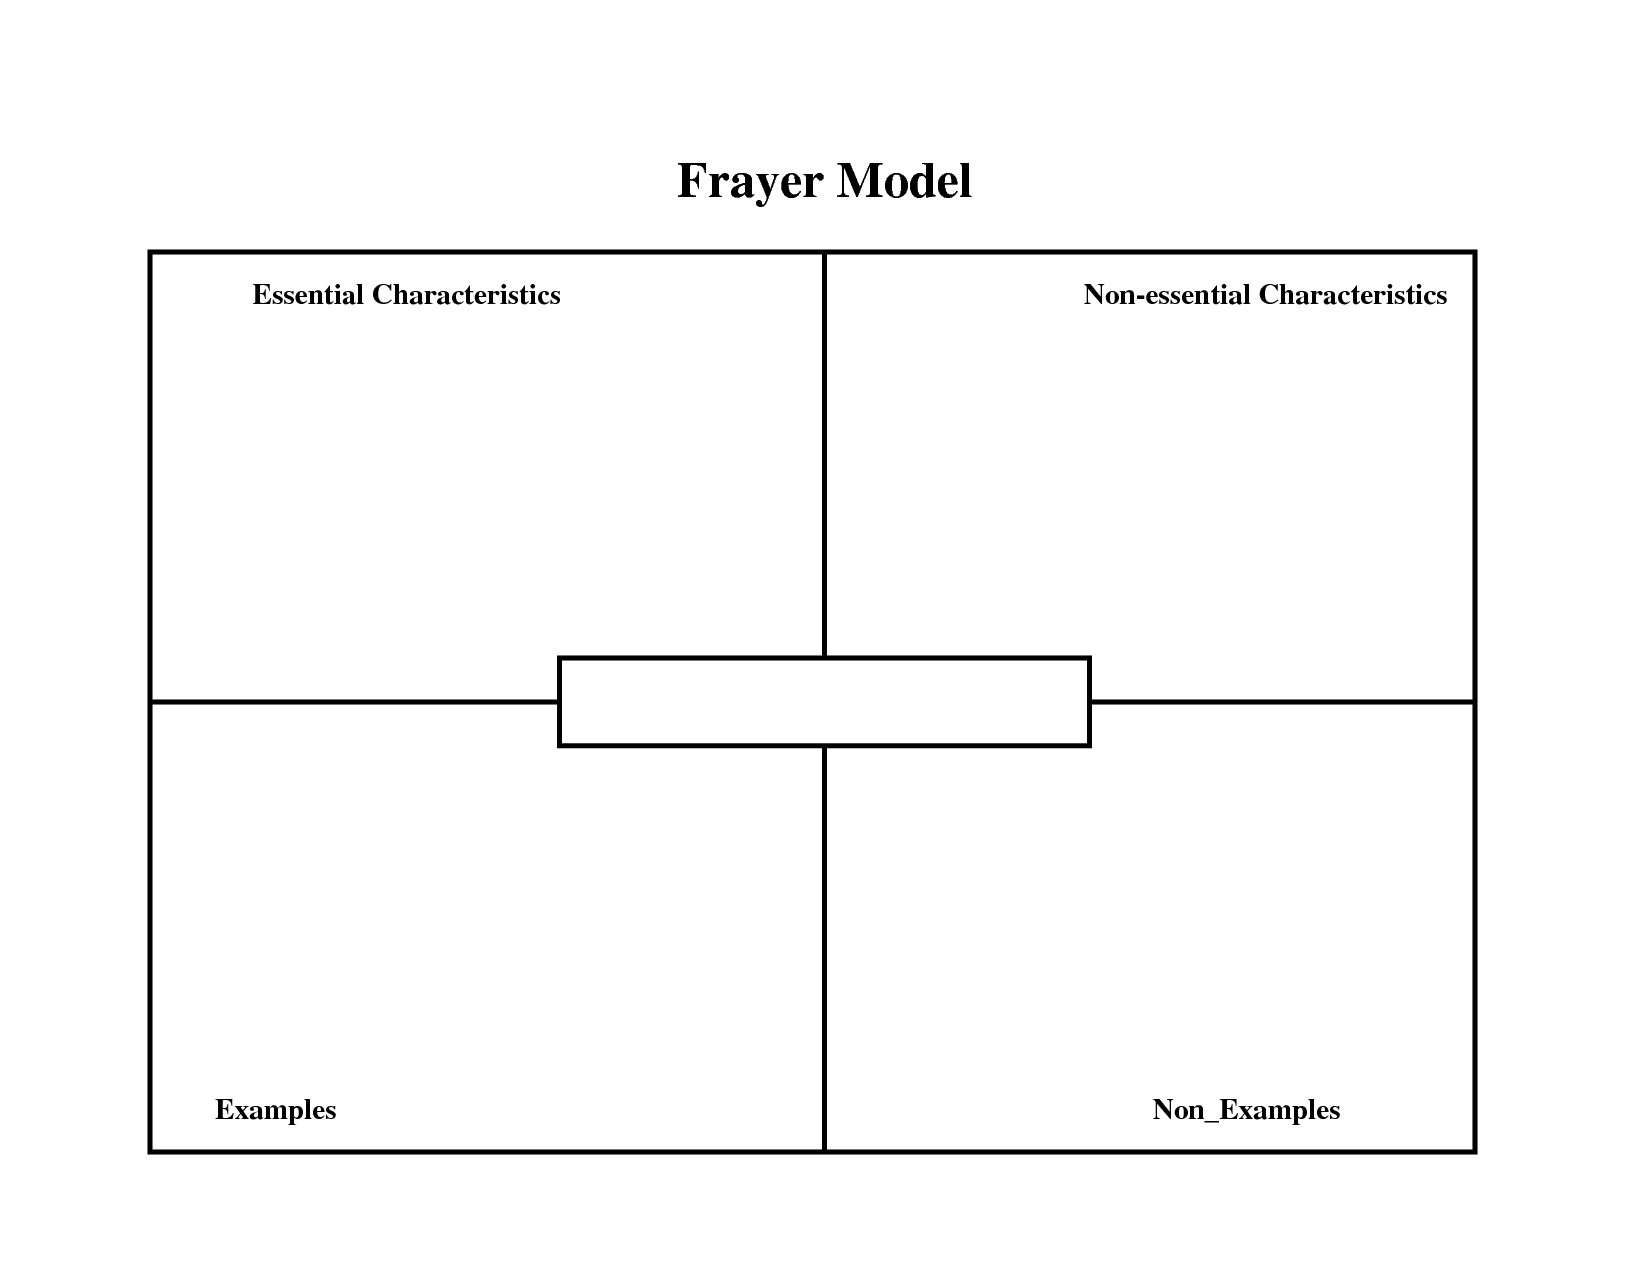 Frayer Model Template  School    Hcpss Org And School